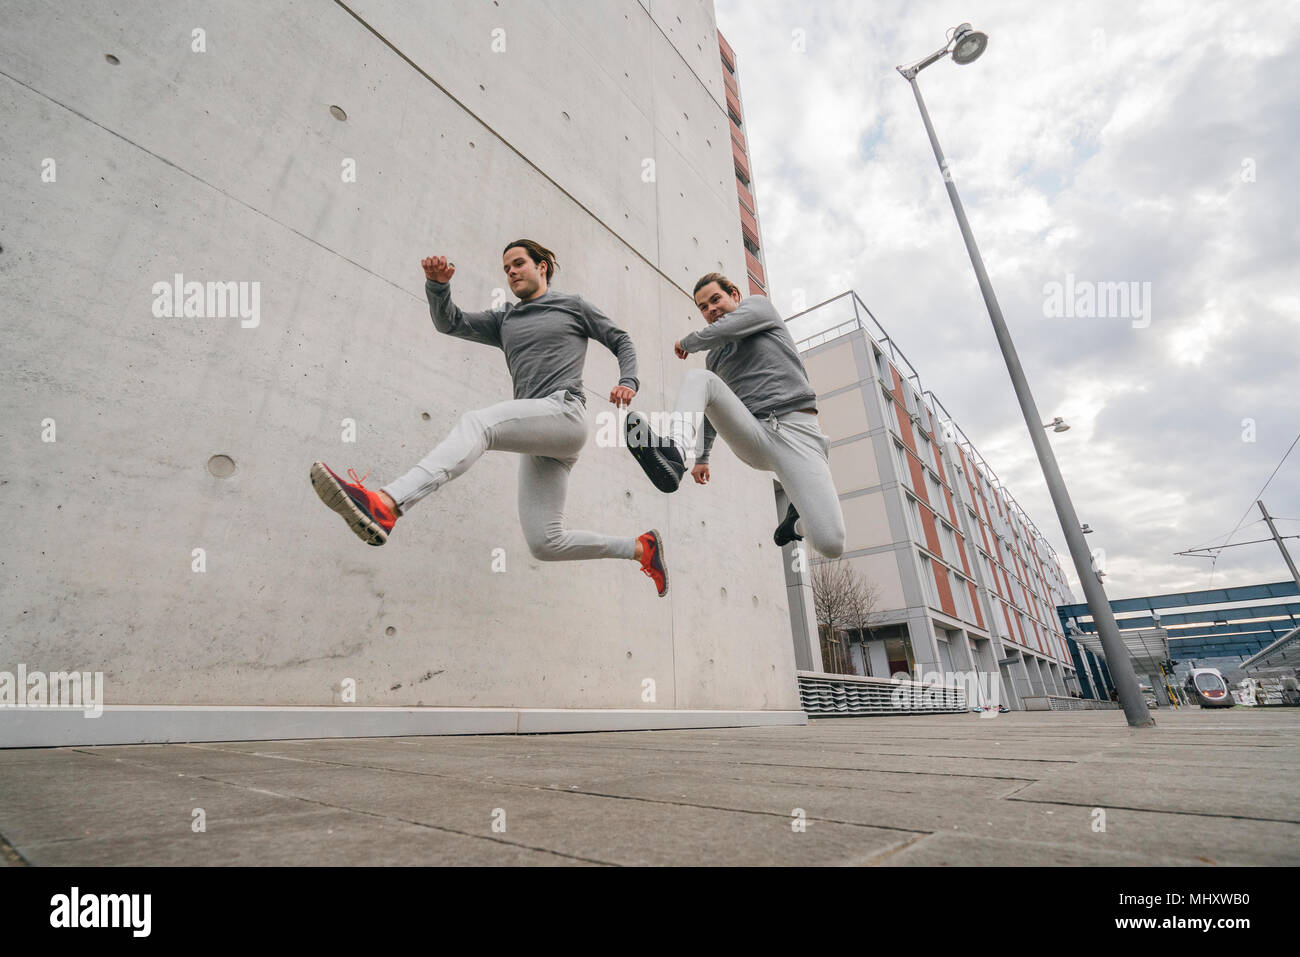 Young adult male twin runners, running and jumping mid air on city sidewalk - Stock Image